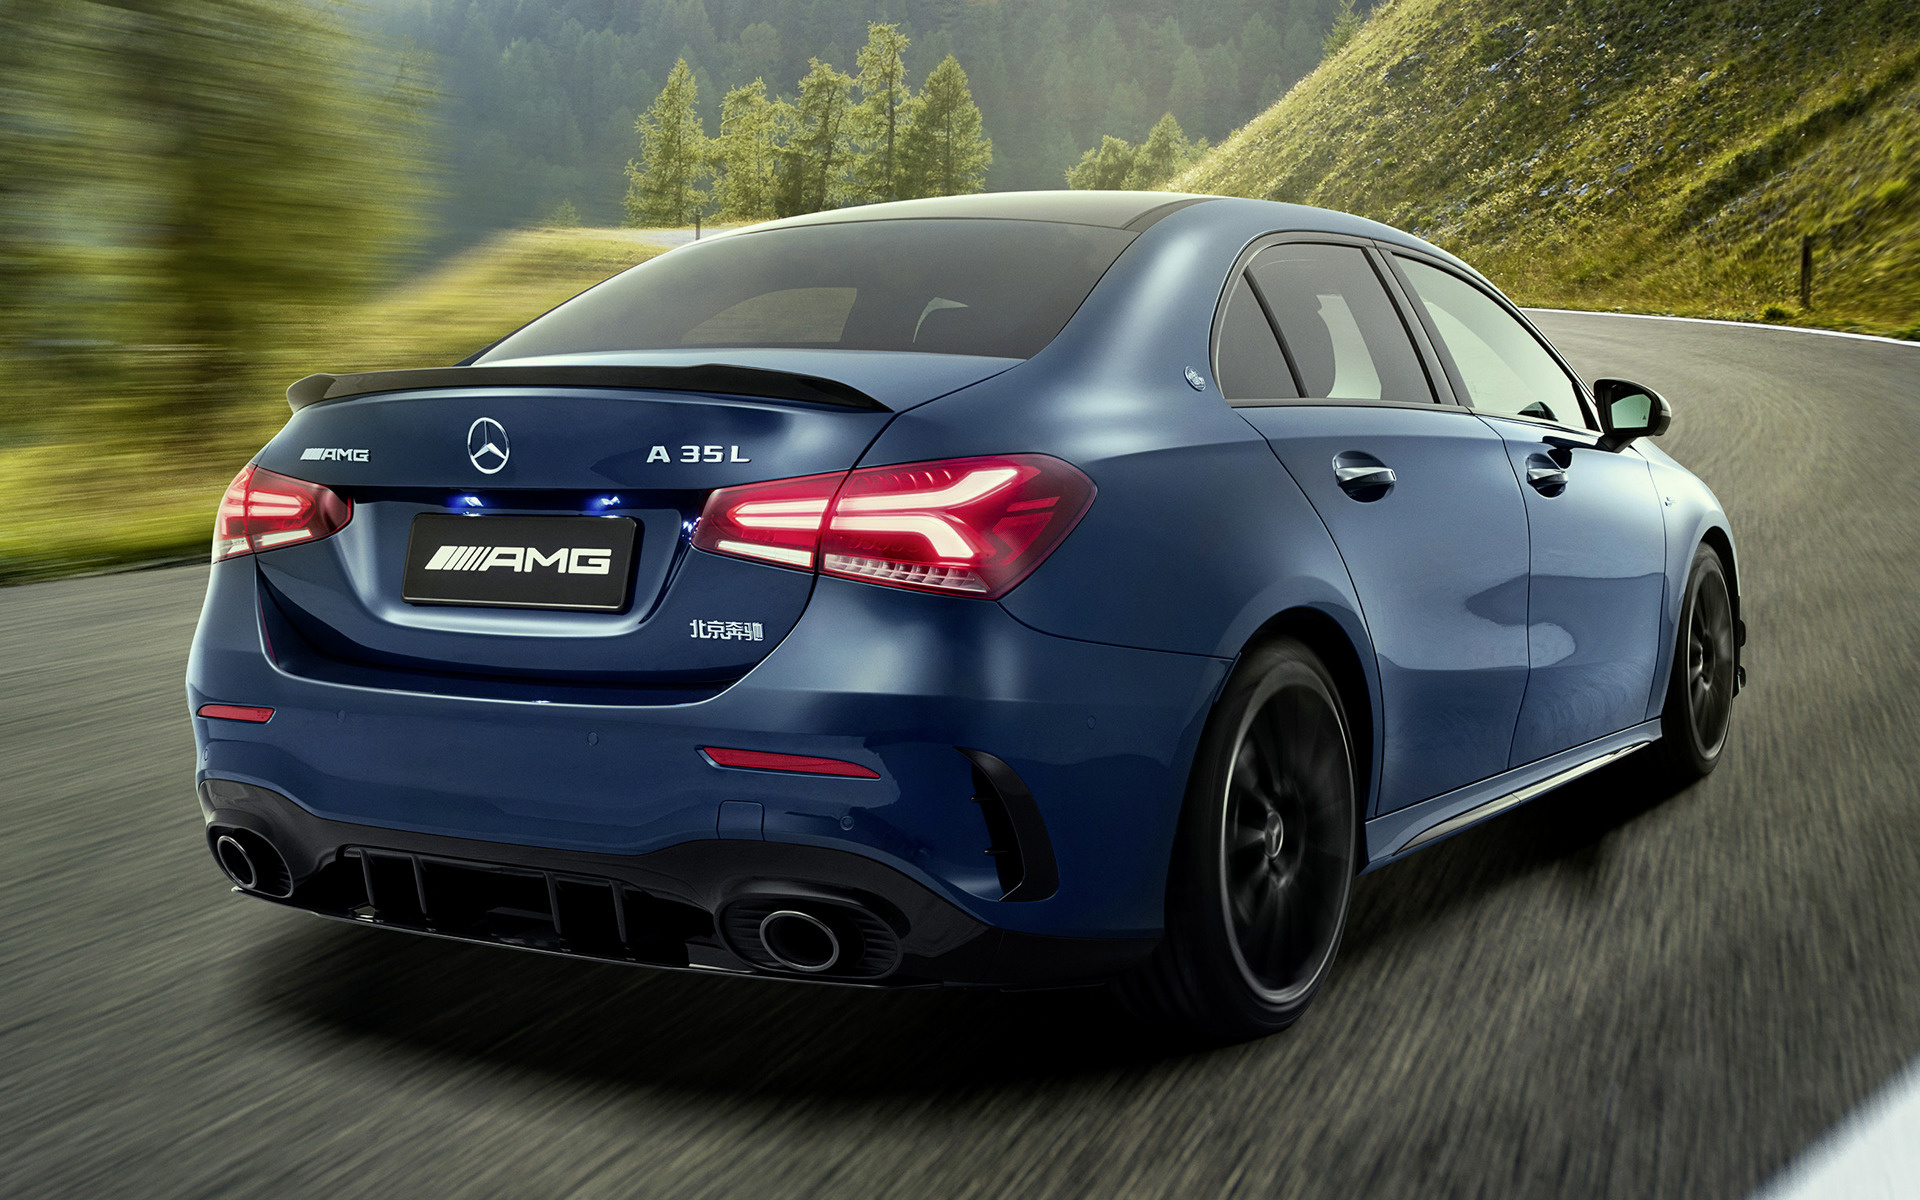 Mercedes Benz Amg >> 2019 Mercedes-AMG A 35 Sedan Aerodynamics Package [Long] (CN) - Wallpapers and HD Images | Car Pixel